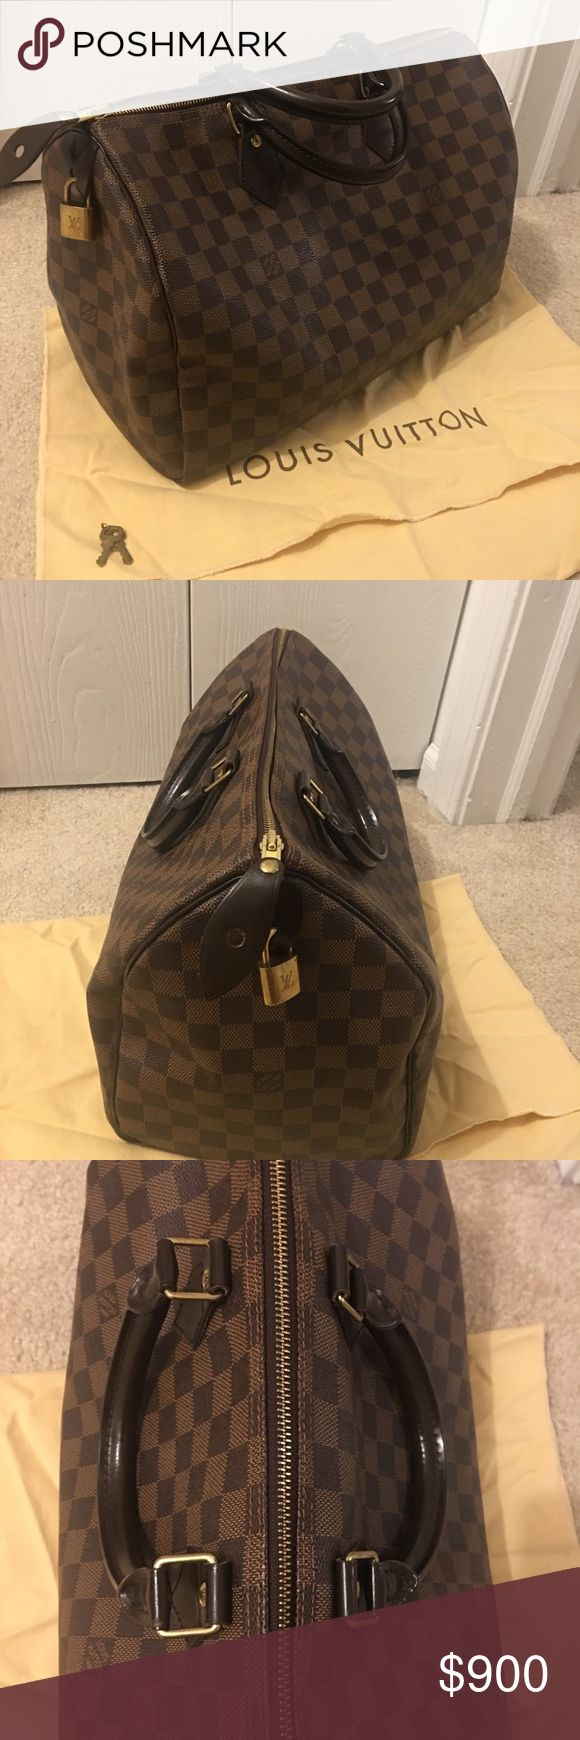 Louis Vuitton Speedy 35 *Mint/Like new condition* Great condition Authentic Louis Vuitton Speedy 35.  Very well taken care of no stains, wear, or tear. Louis Vuitton Bags